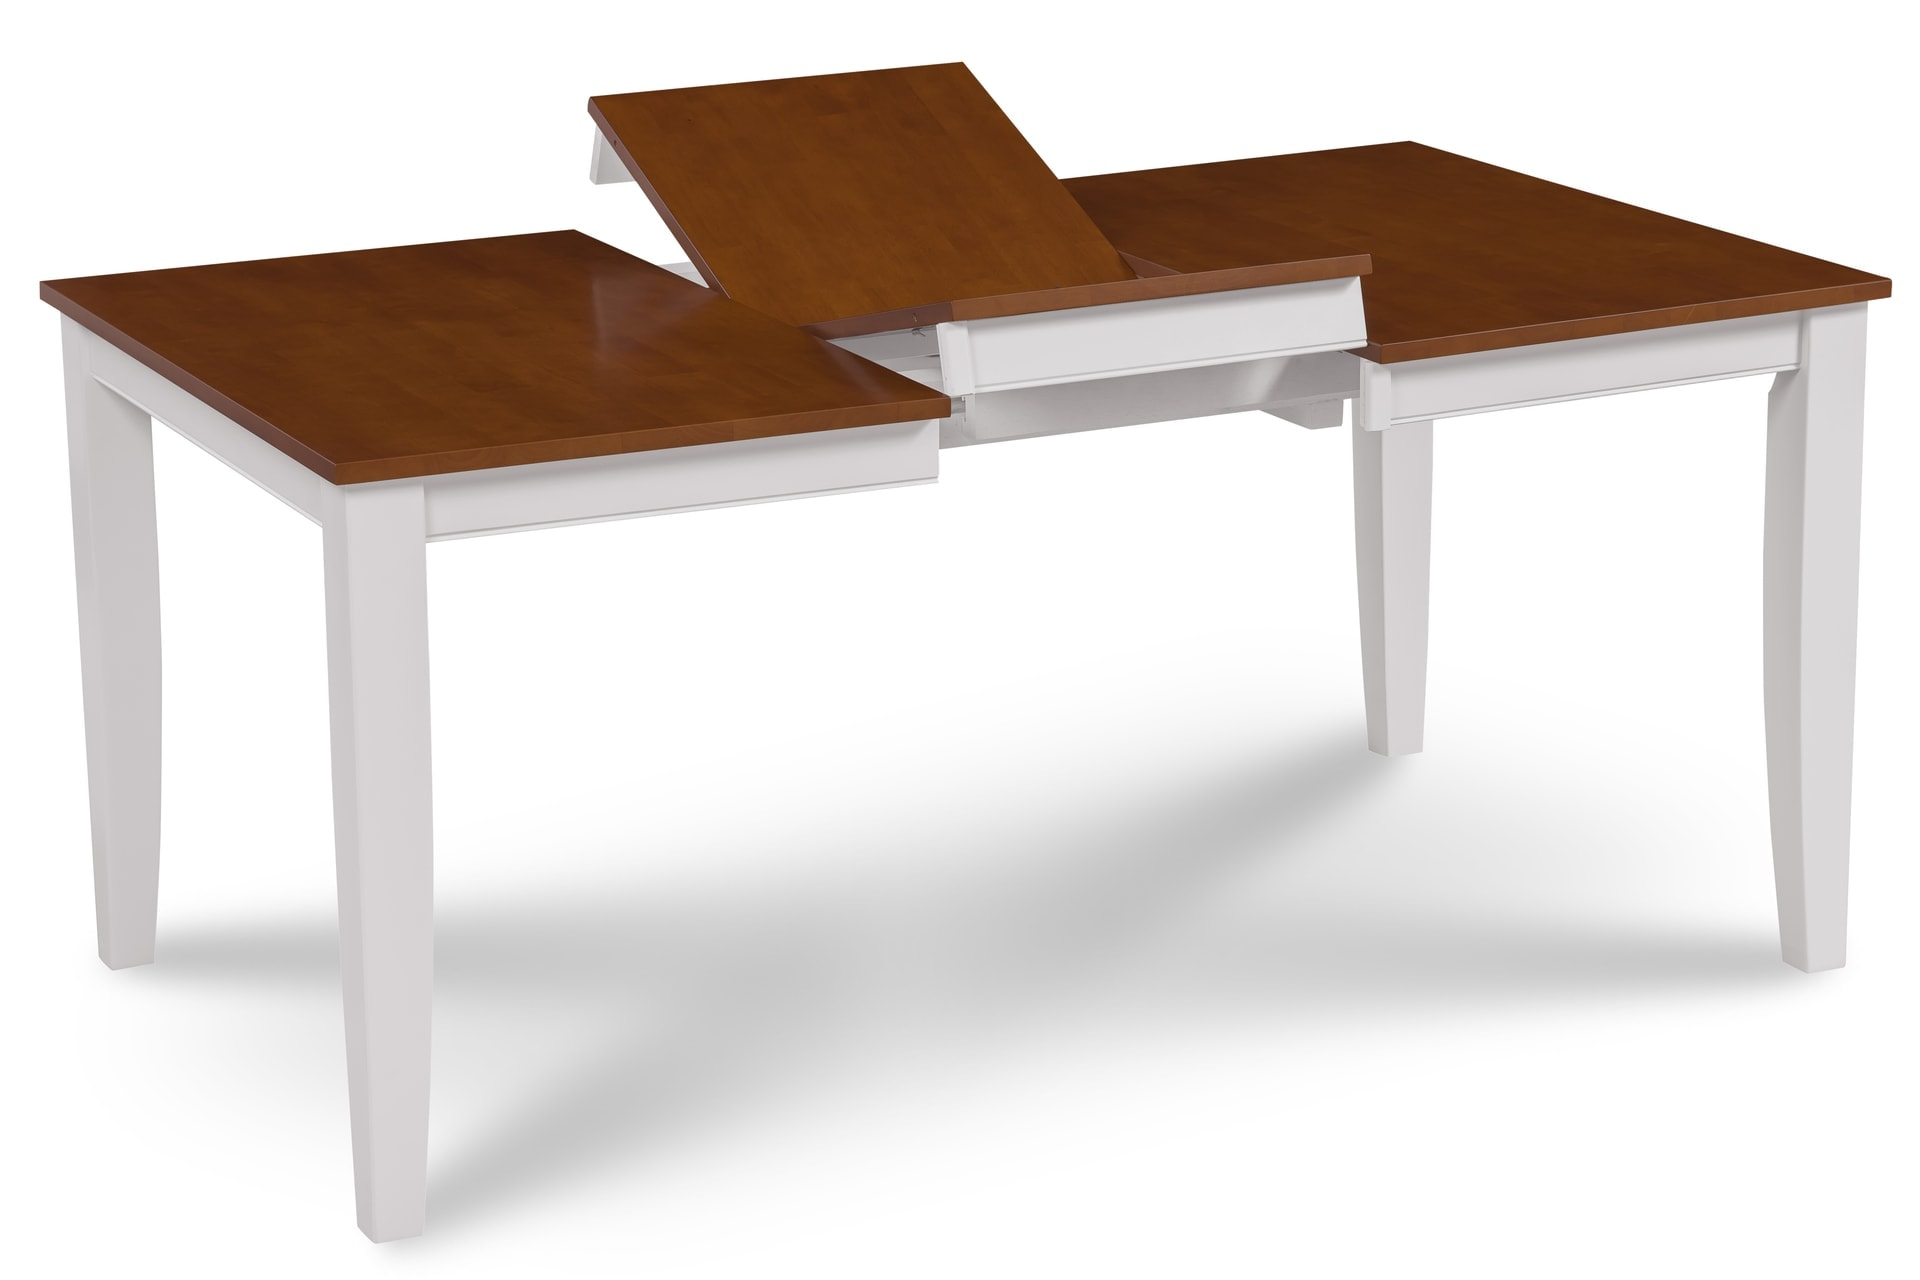 Fullerton Folding Dining Table In White With Cherry Top